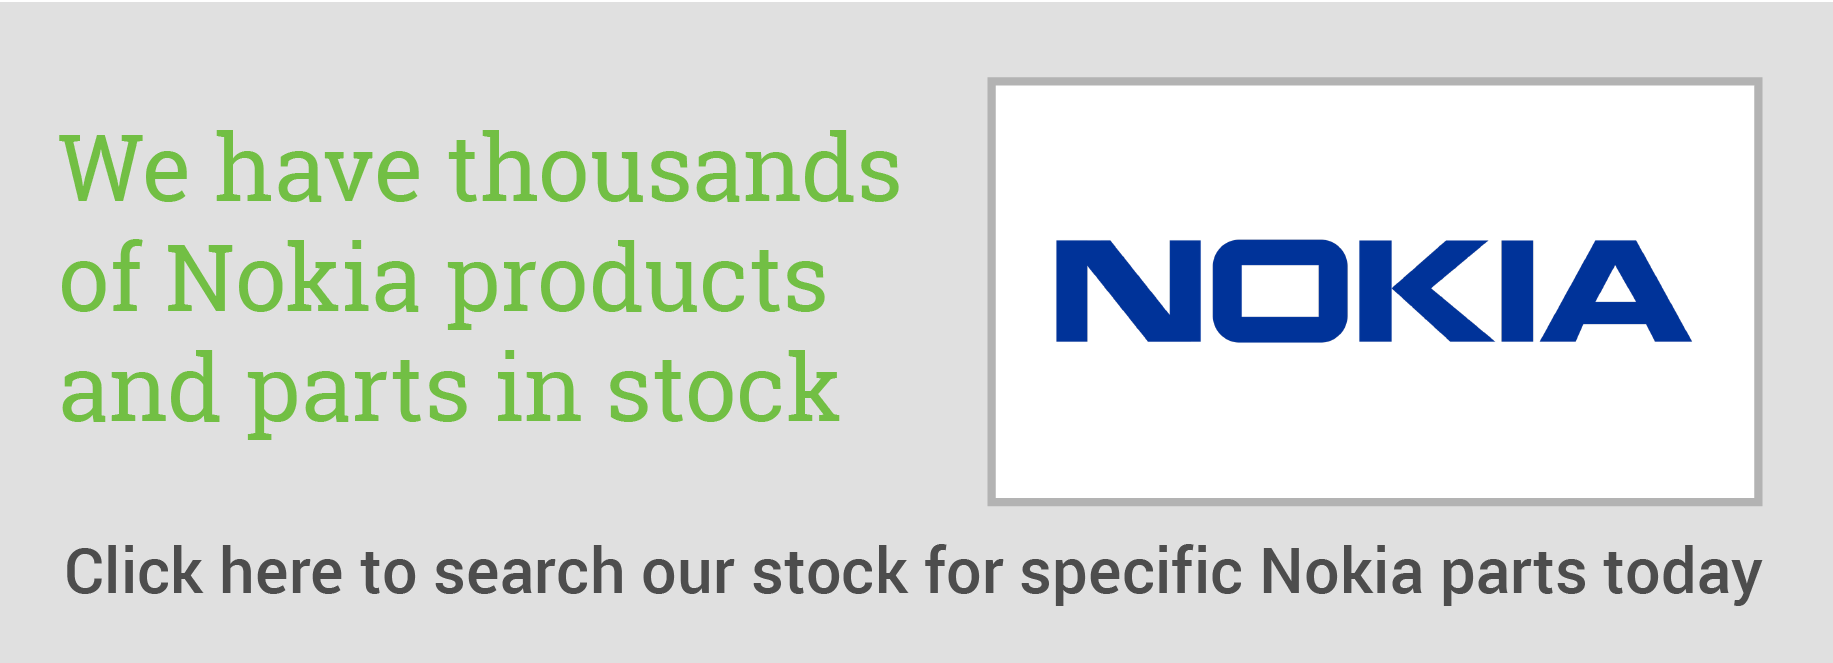 nokia-products-01